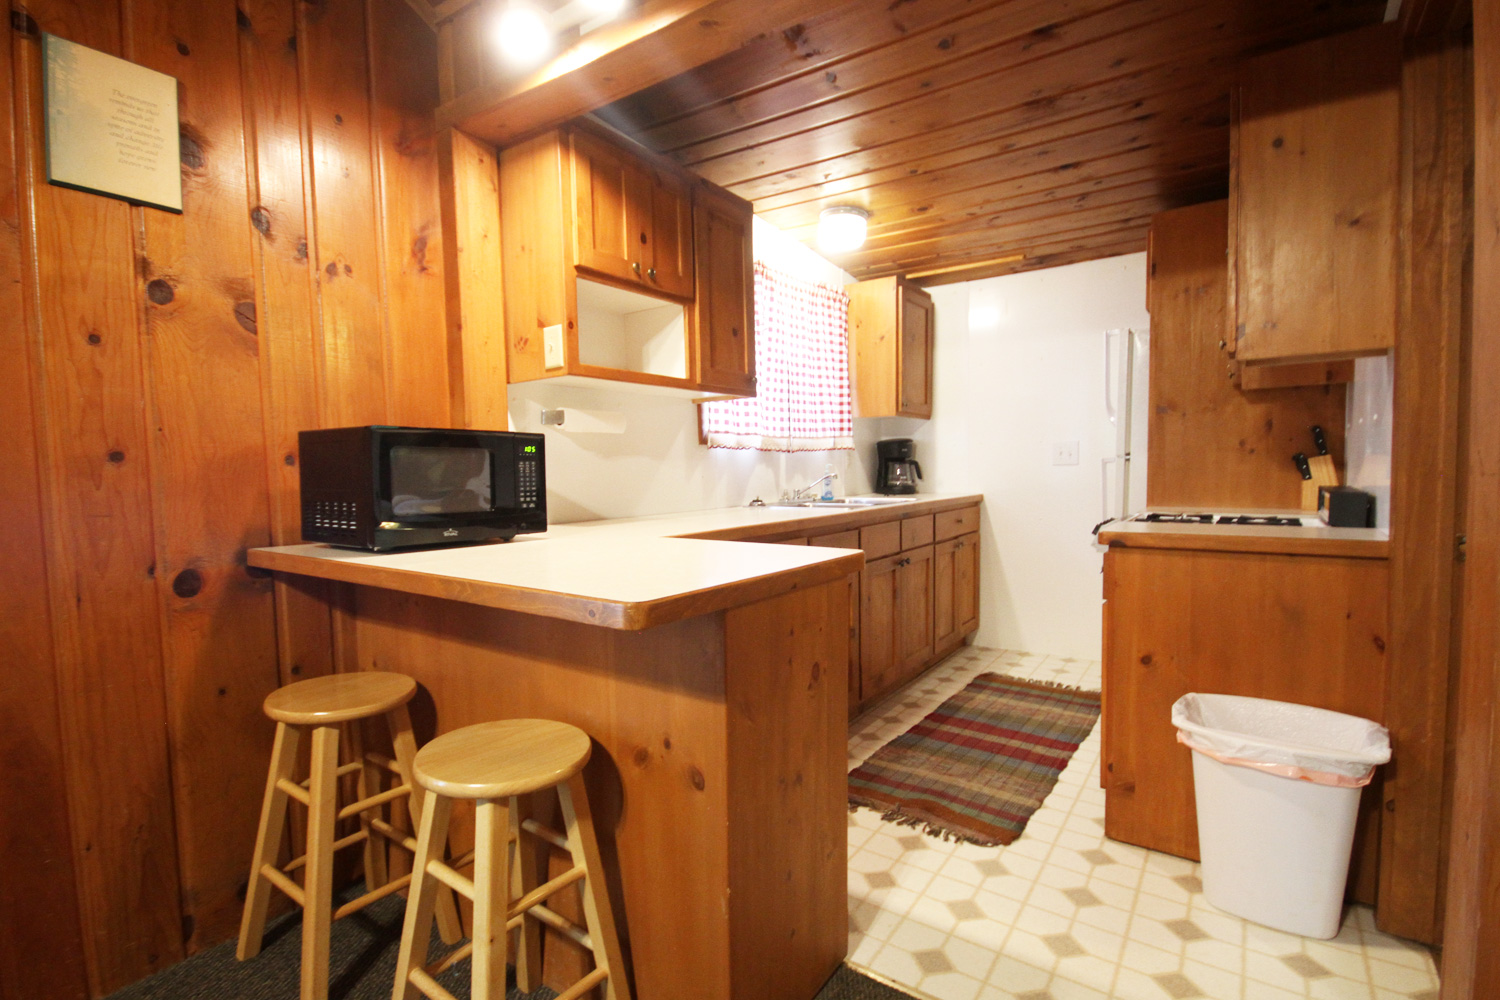 Galley Style Kitchen with 2-Seat Breakfast Nook